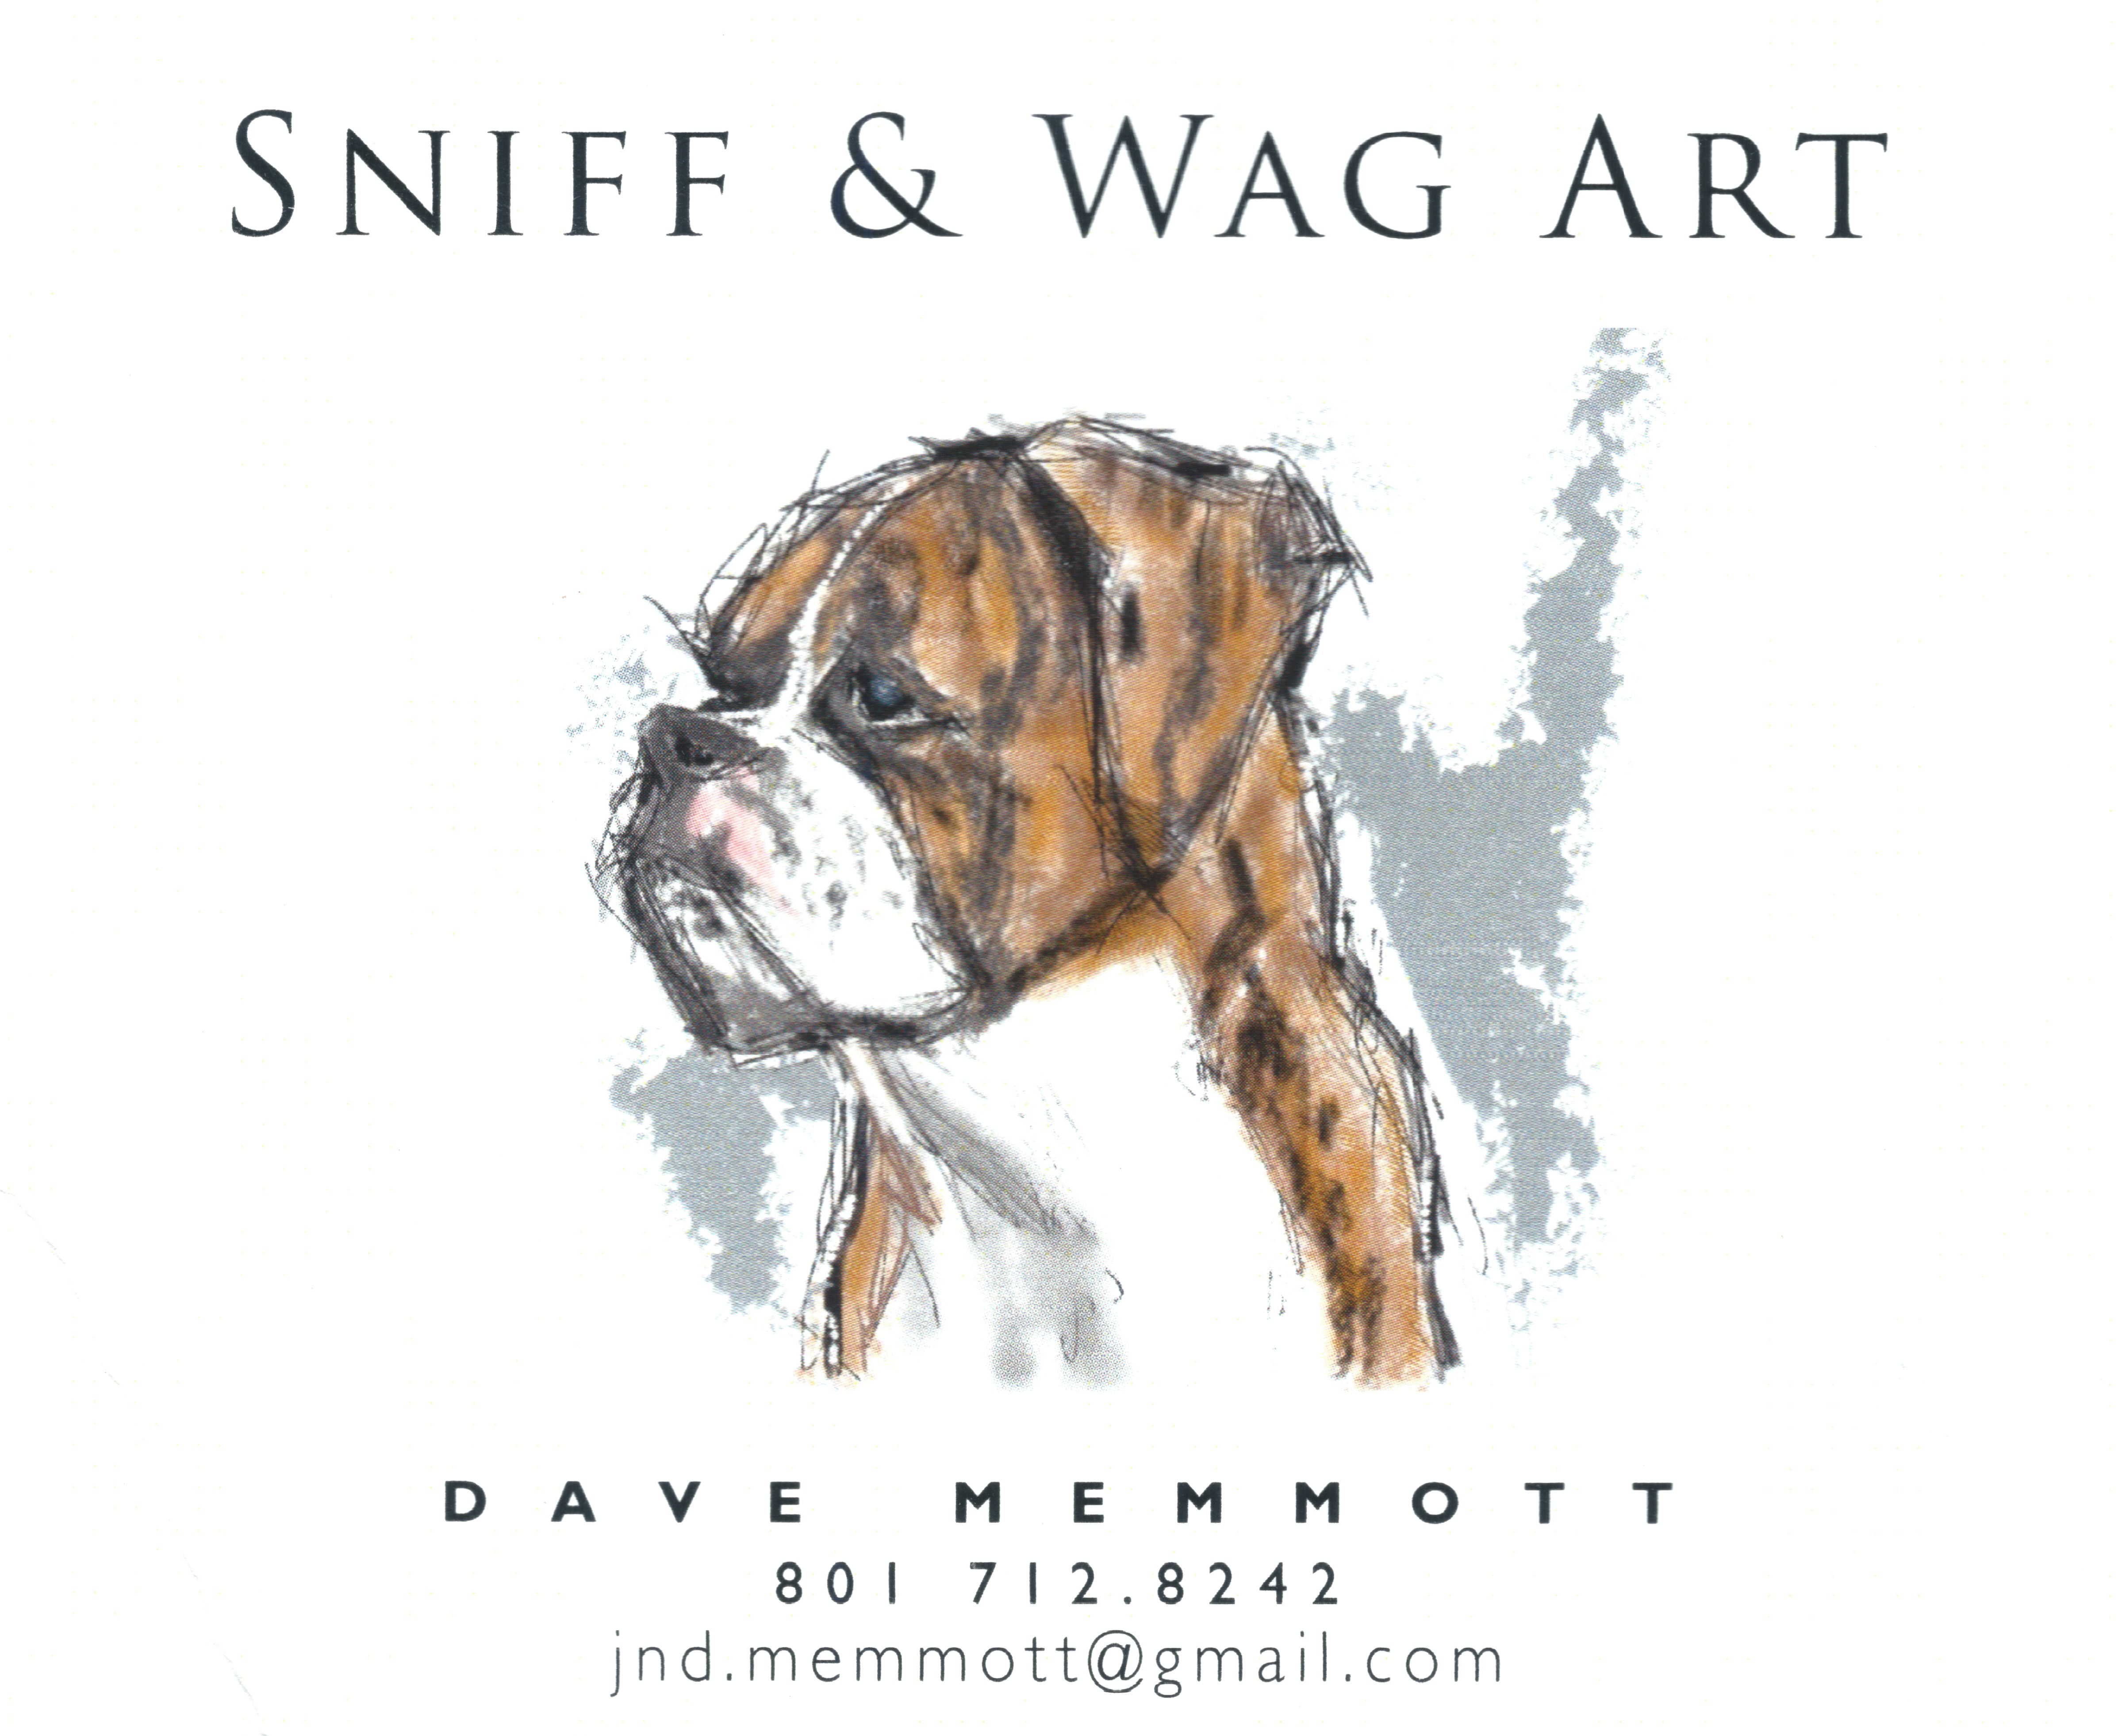 Sniff and Wag Art